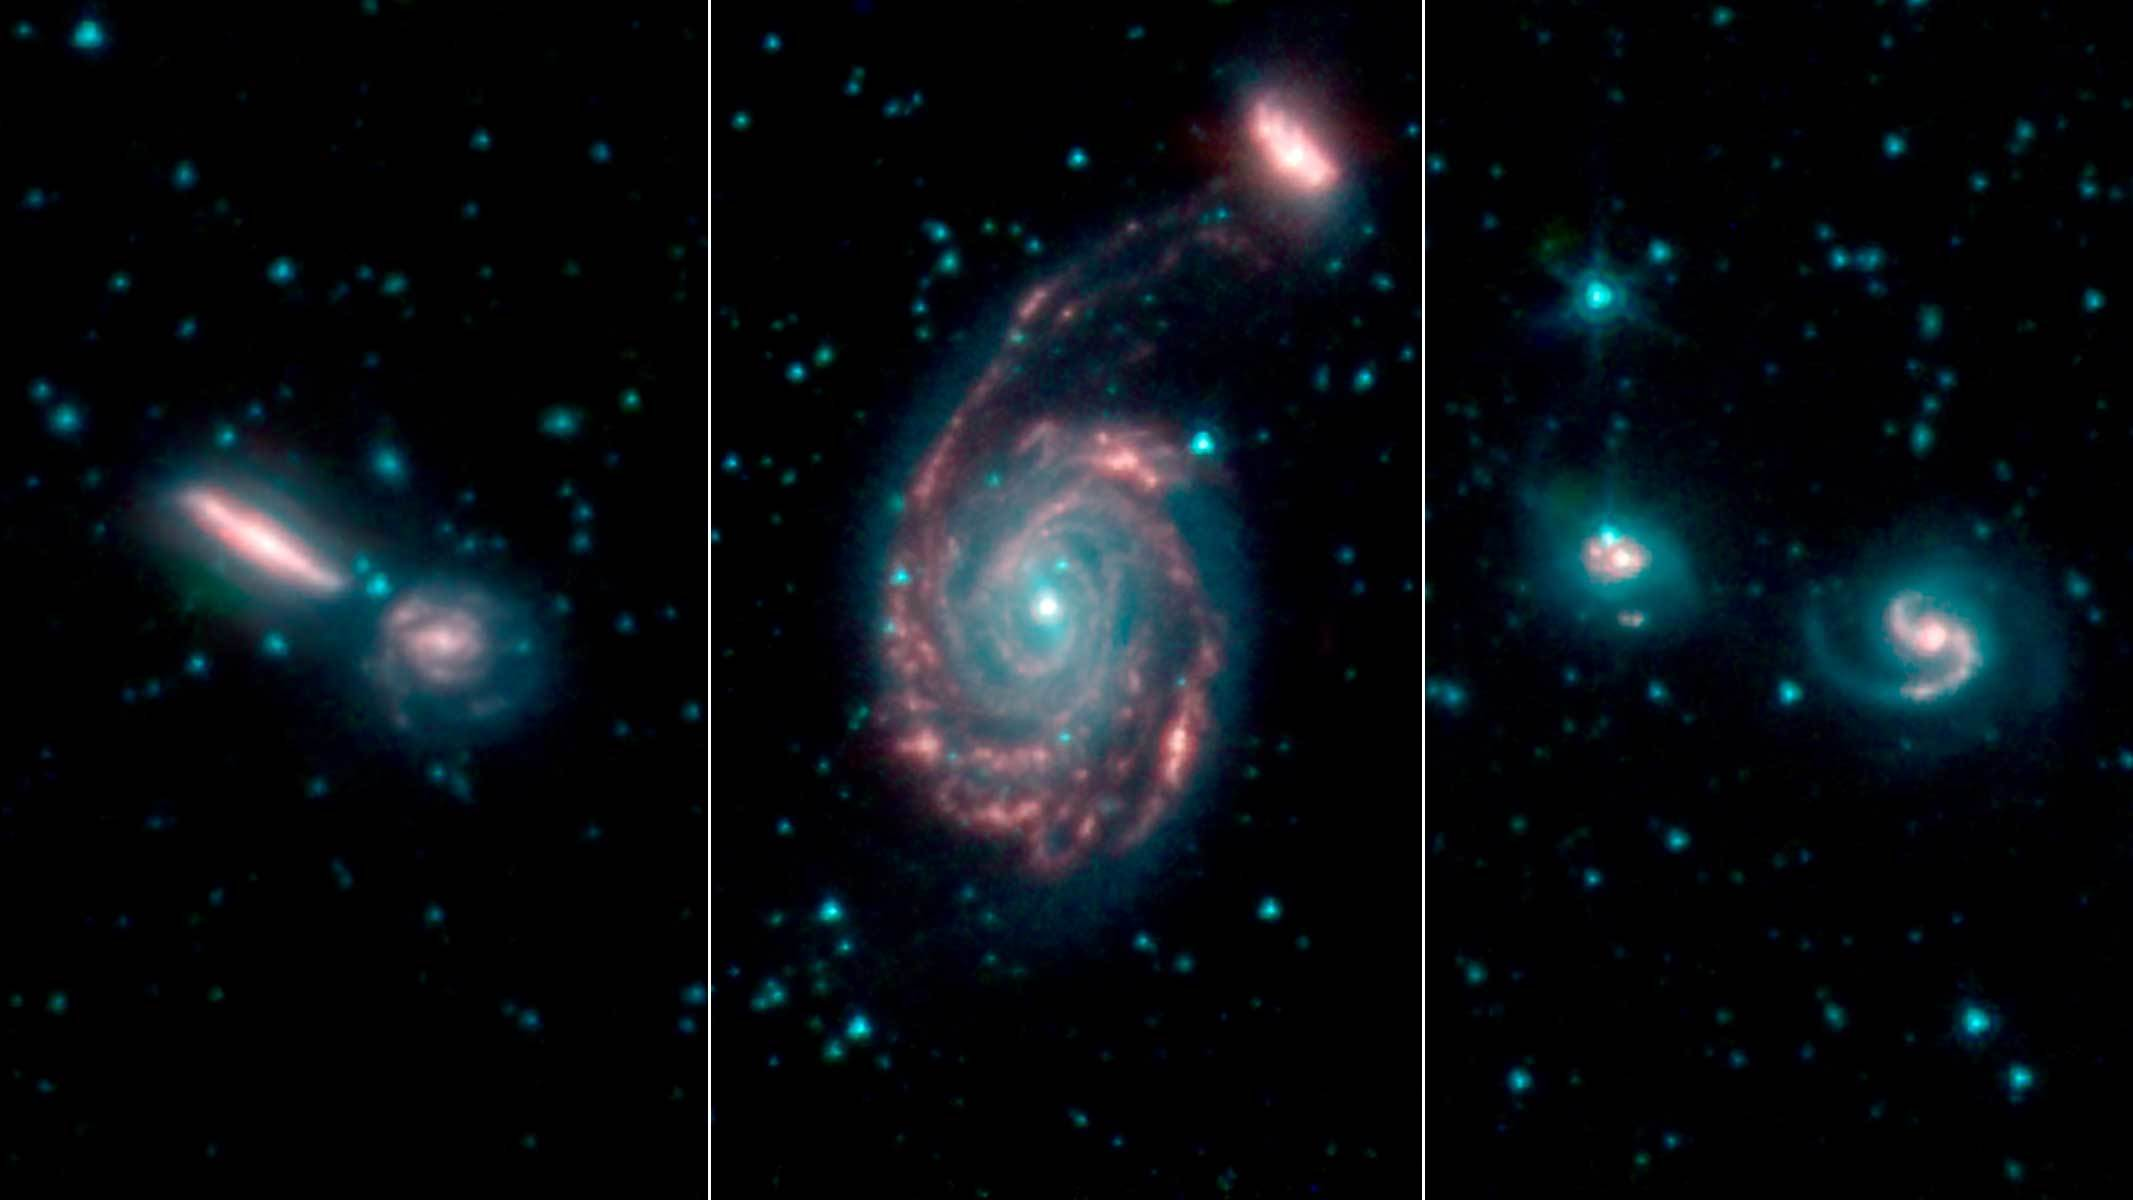 Three images are shown showing swirling galaxies seen by NASA's Spitzer space telescope.